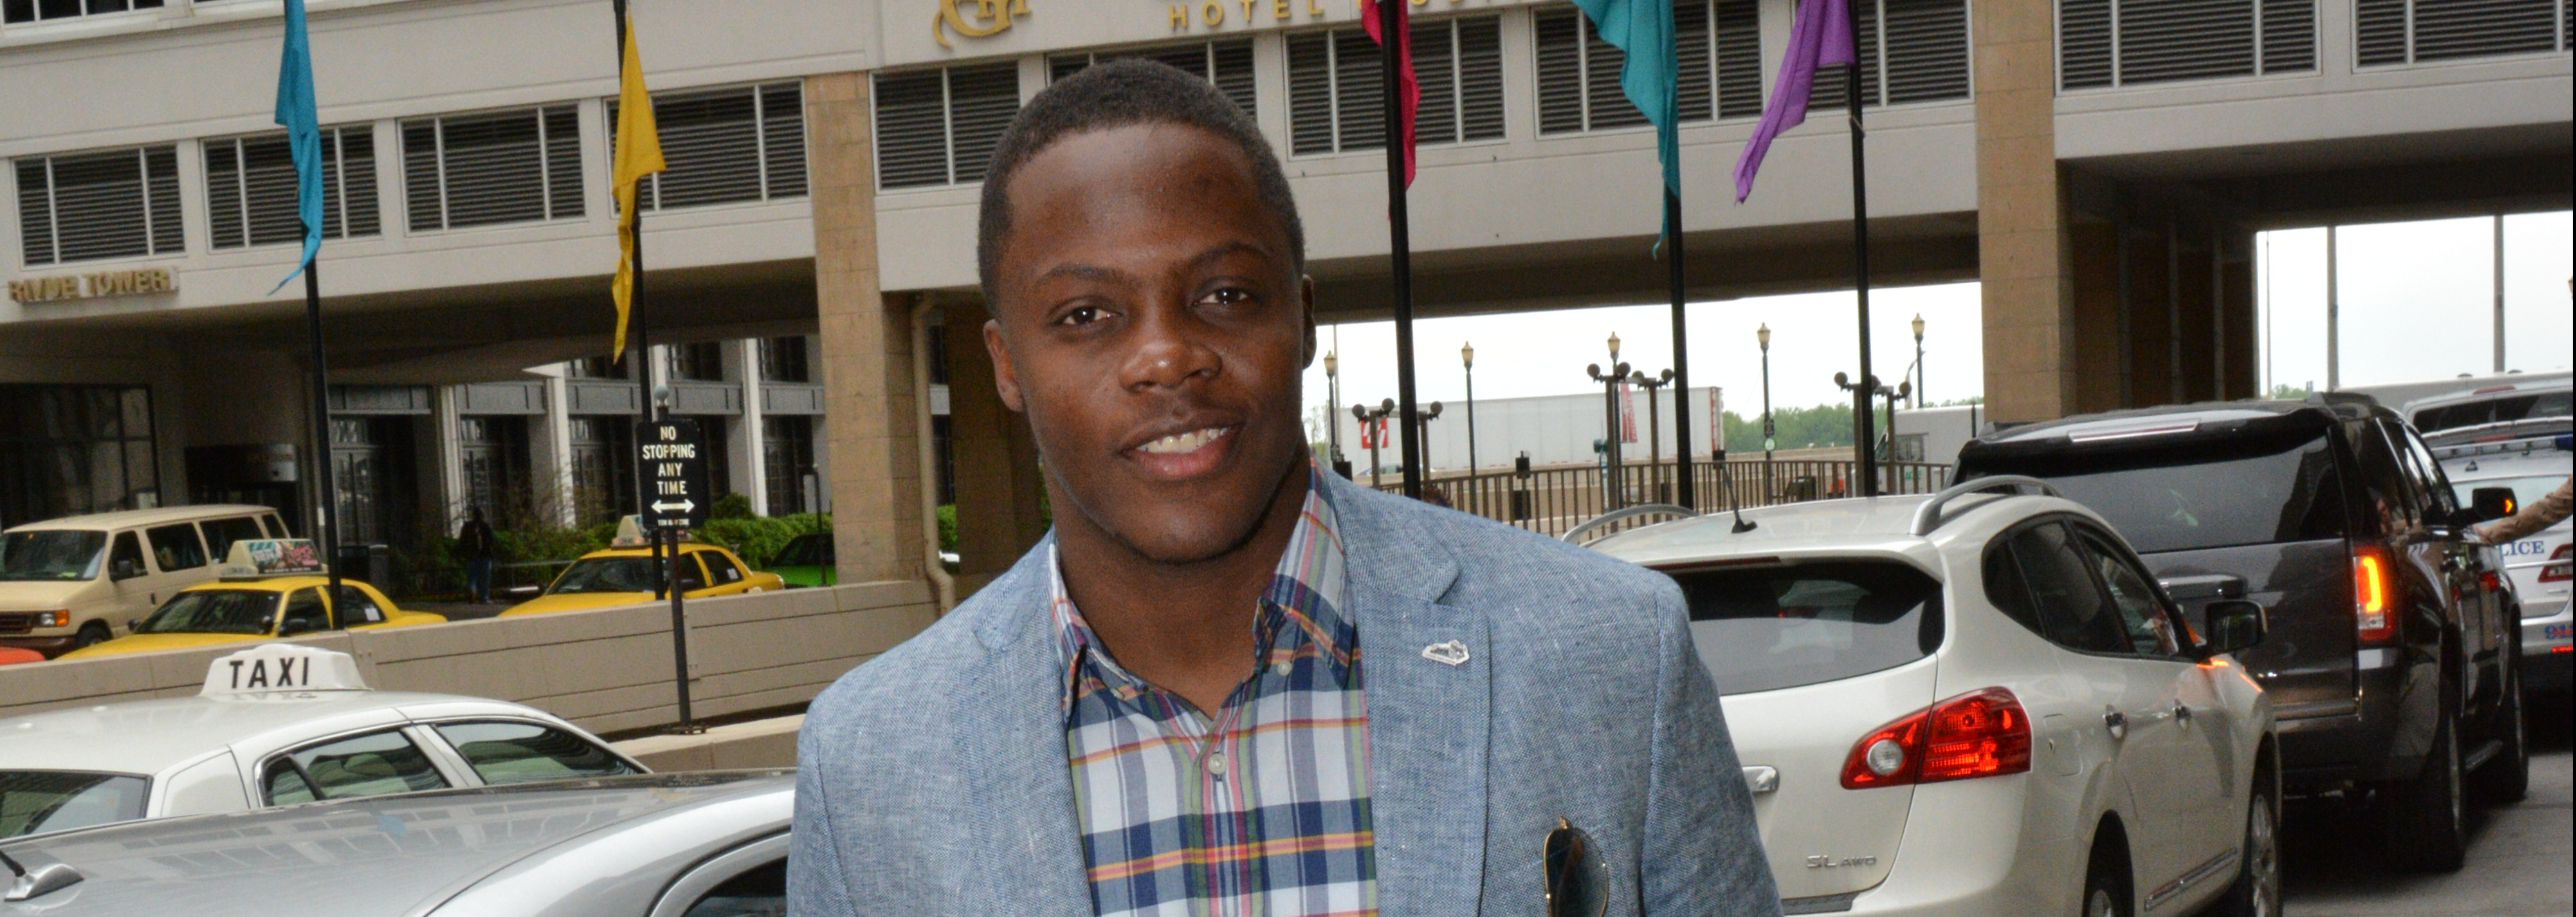 Teddy Bridgewater Galt House Hotel Fitted